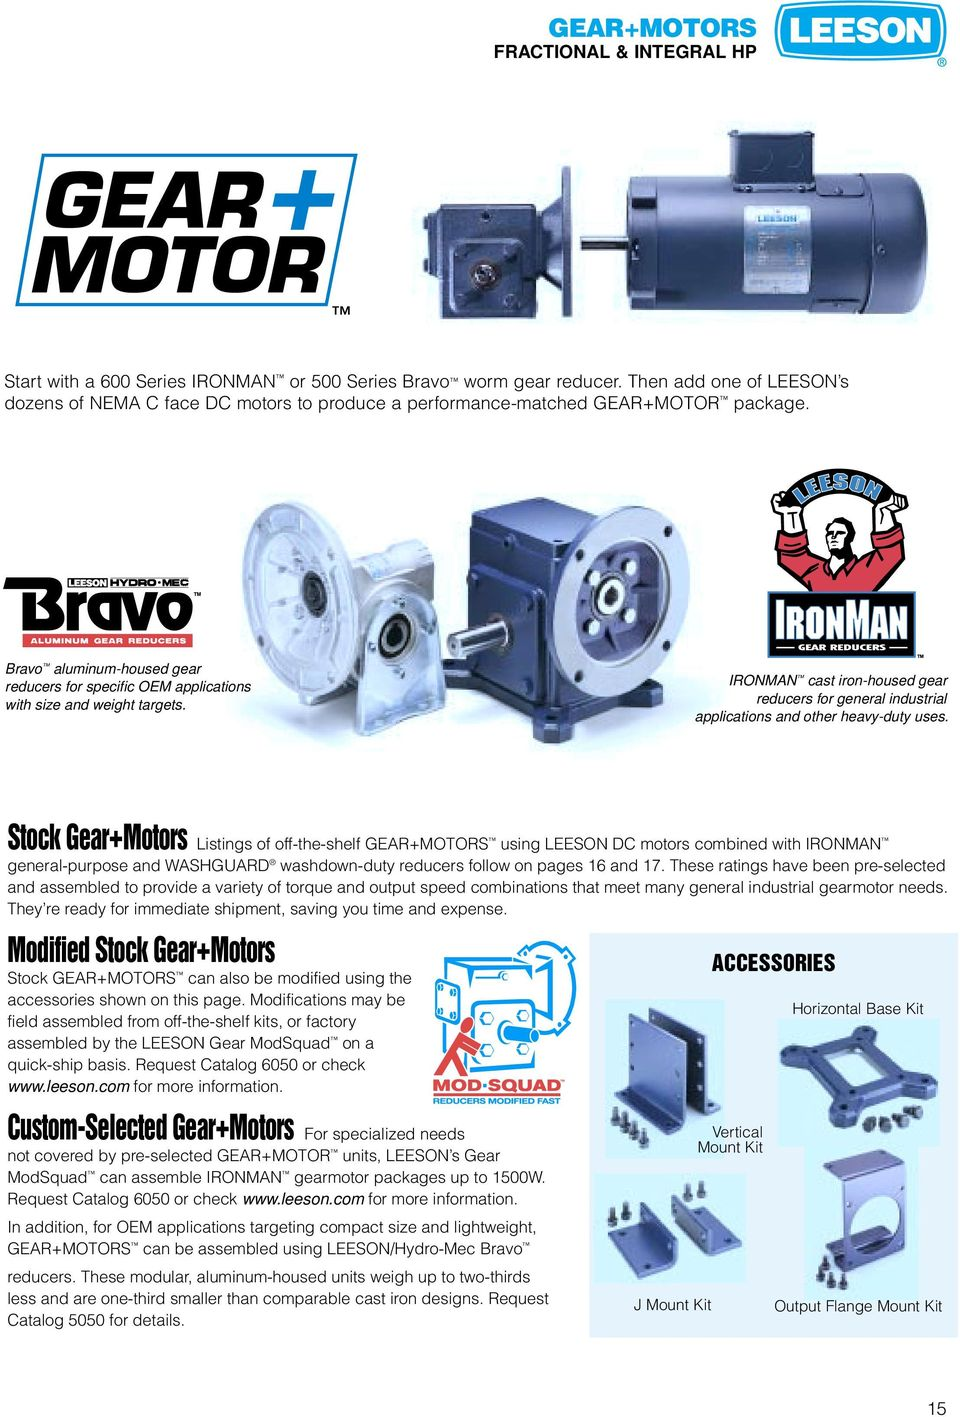 Bravo aluminum-housed gear reducers for specific OEM applications with size and weight targets. IRONMAN cast iron-housed gear reducers for general industrial applications and other heavy-duty uses.